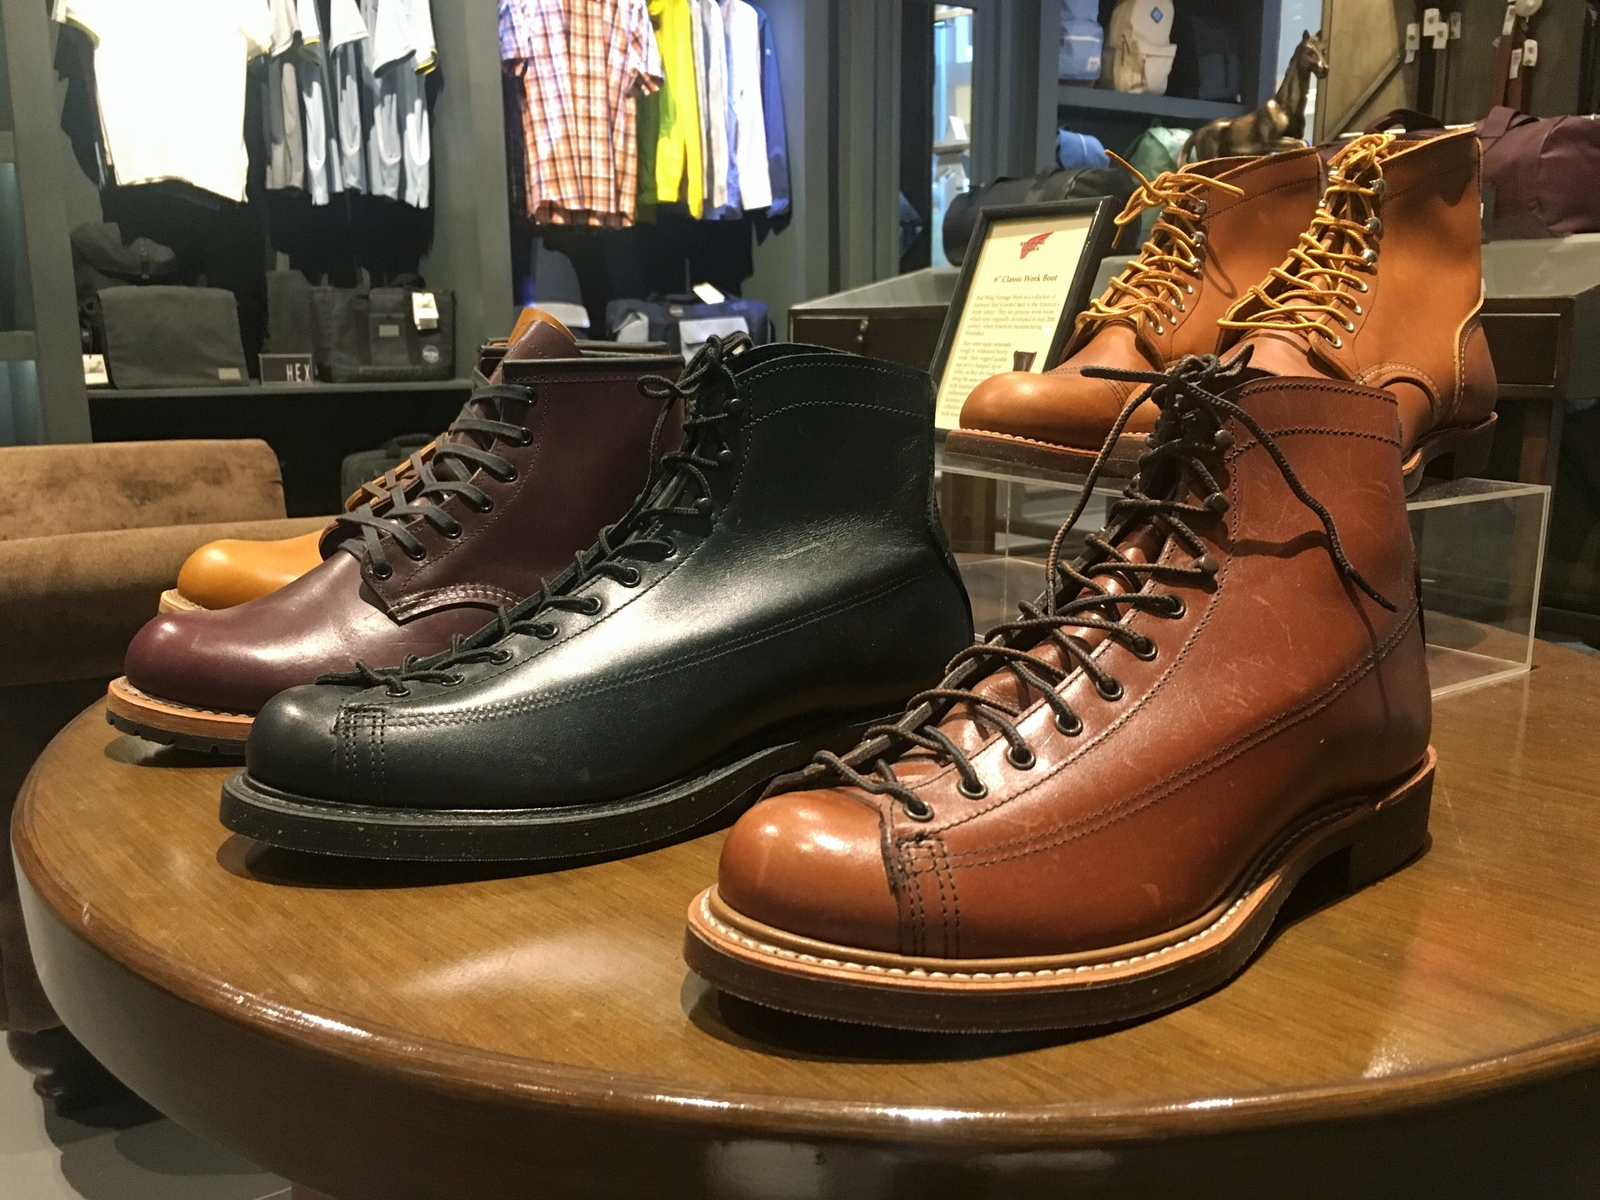 Red Wing Shoes at General Ayala Center Cebu